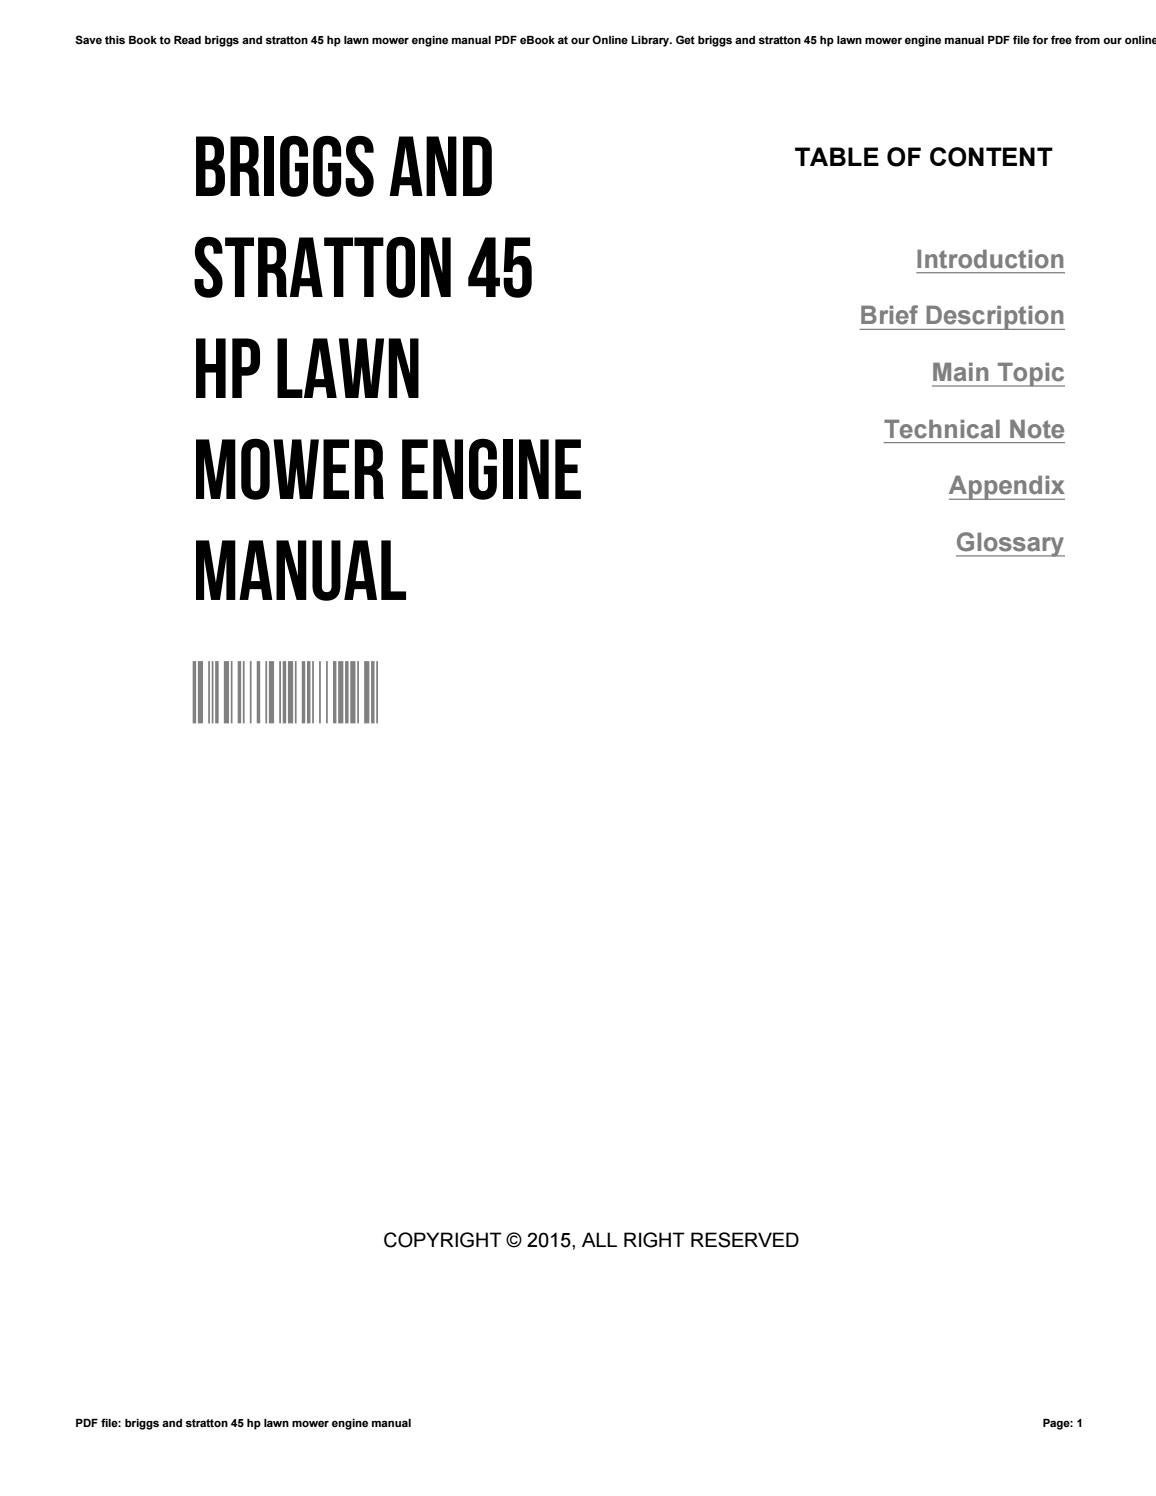 Briggs and stratton 45 hp lawn mower engine manual by